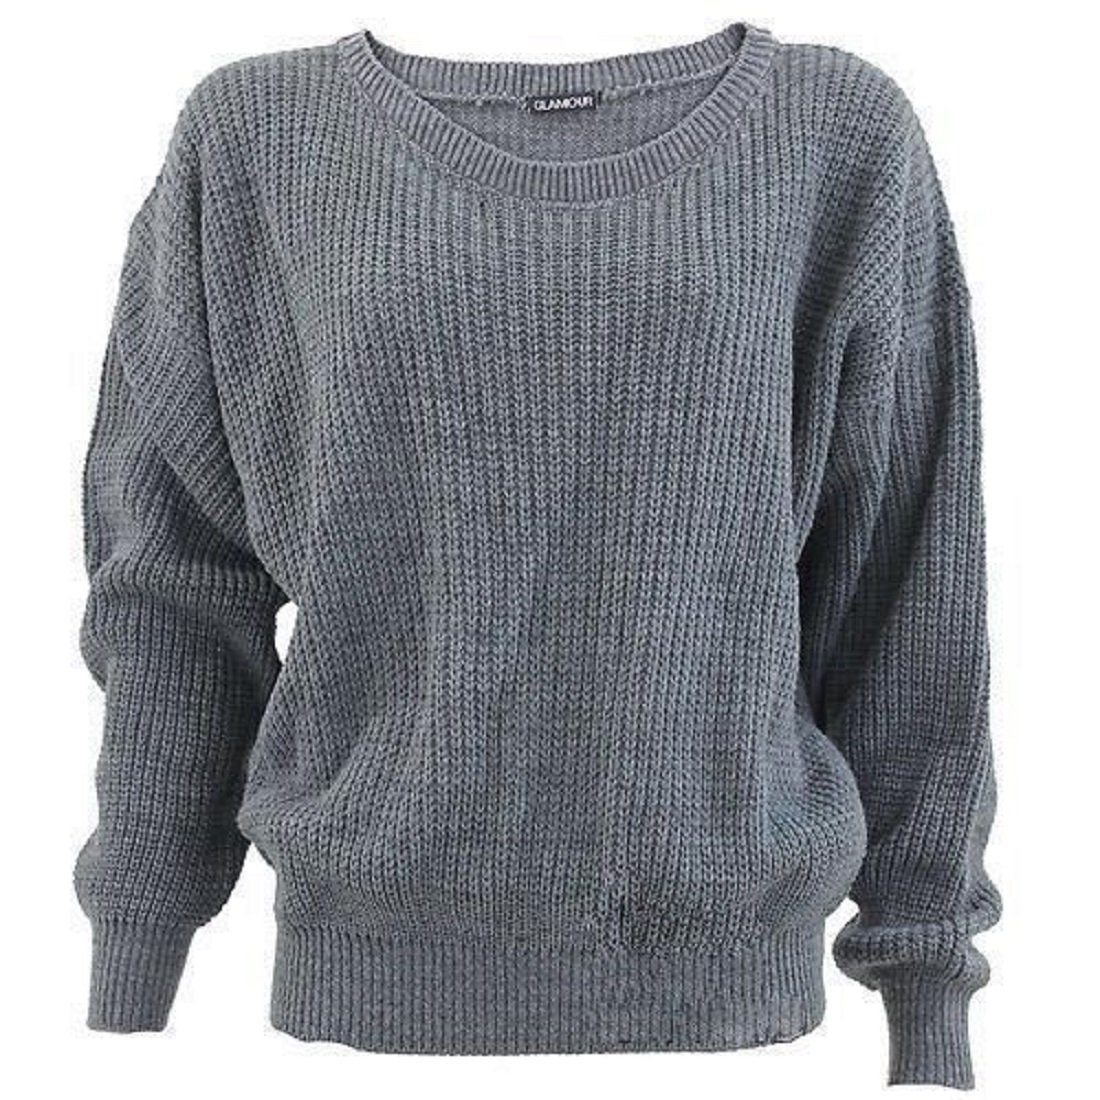 Women's Plus Size Long Sleeves Baggy Style Oversize Sweater Jumper ...